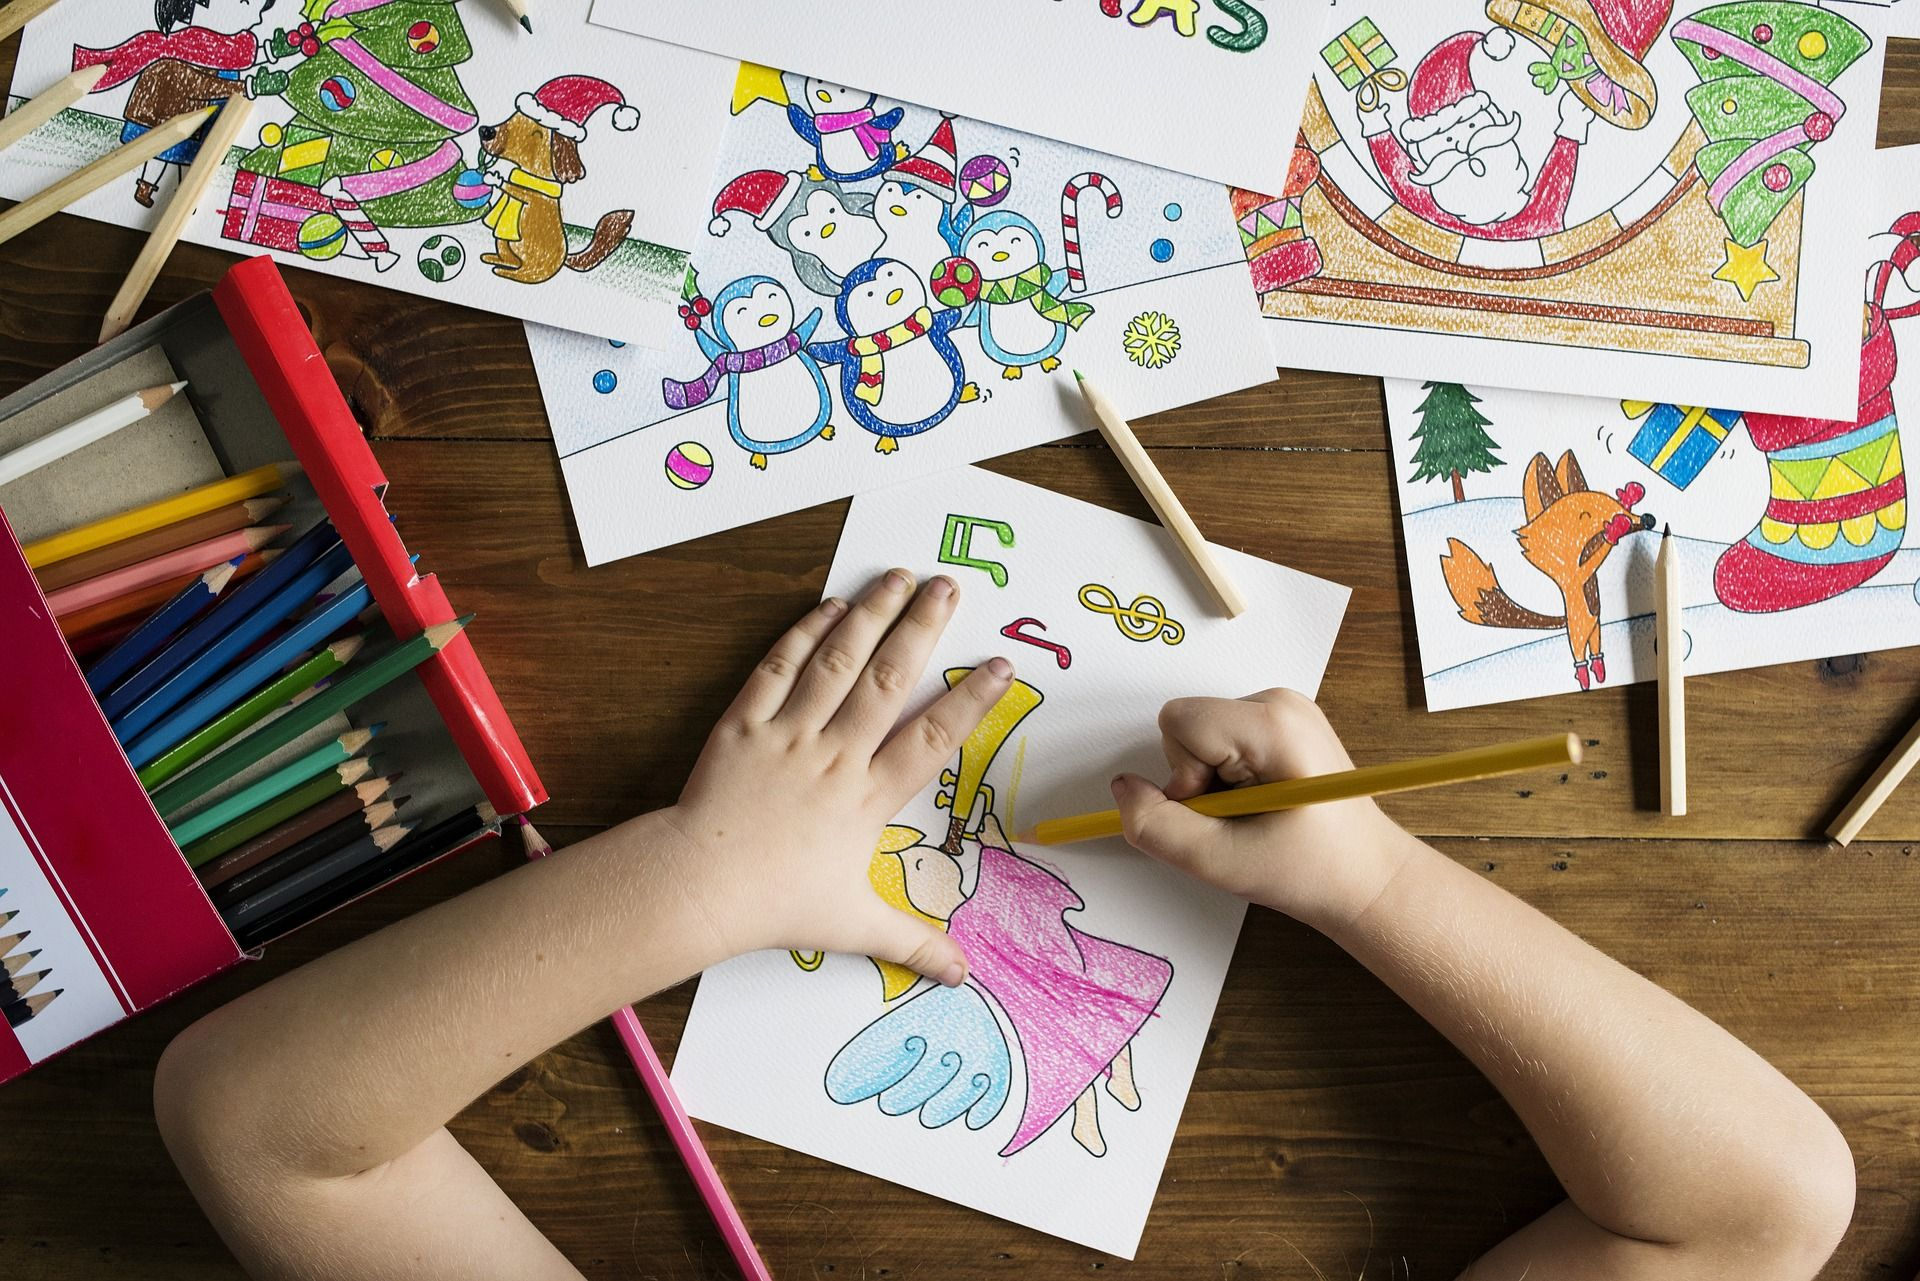 Coloring creativity freedom of expression education pinterest